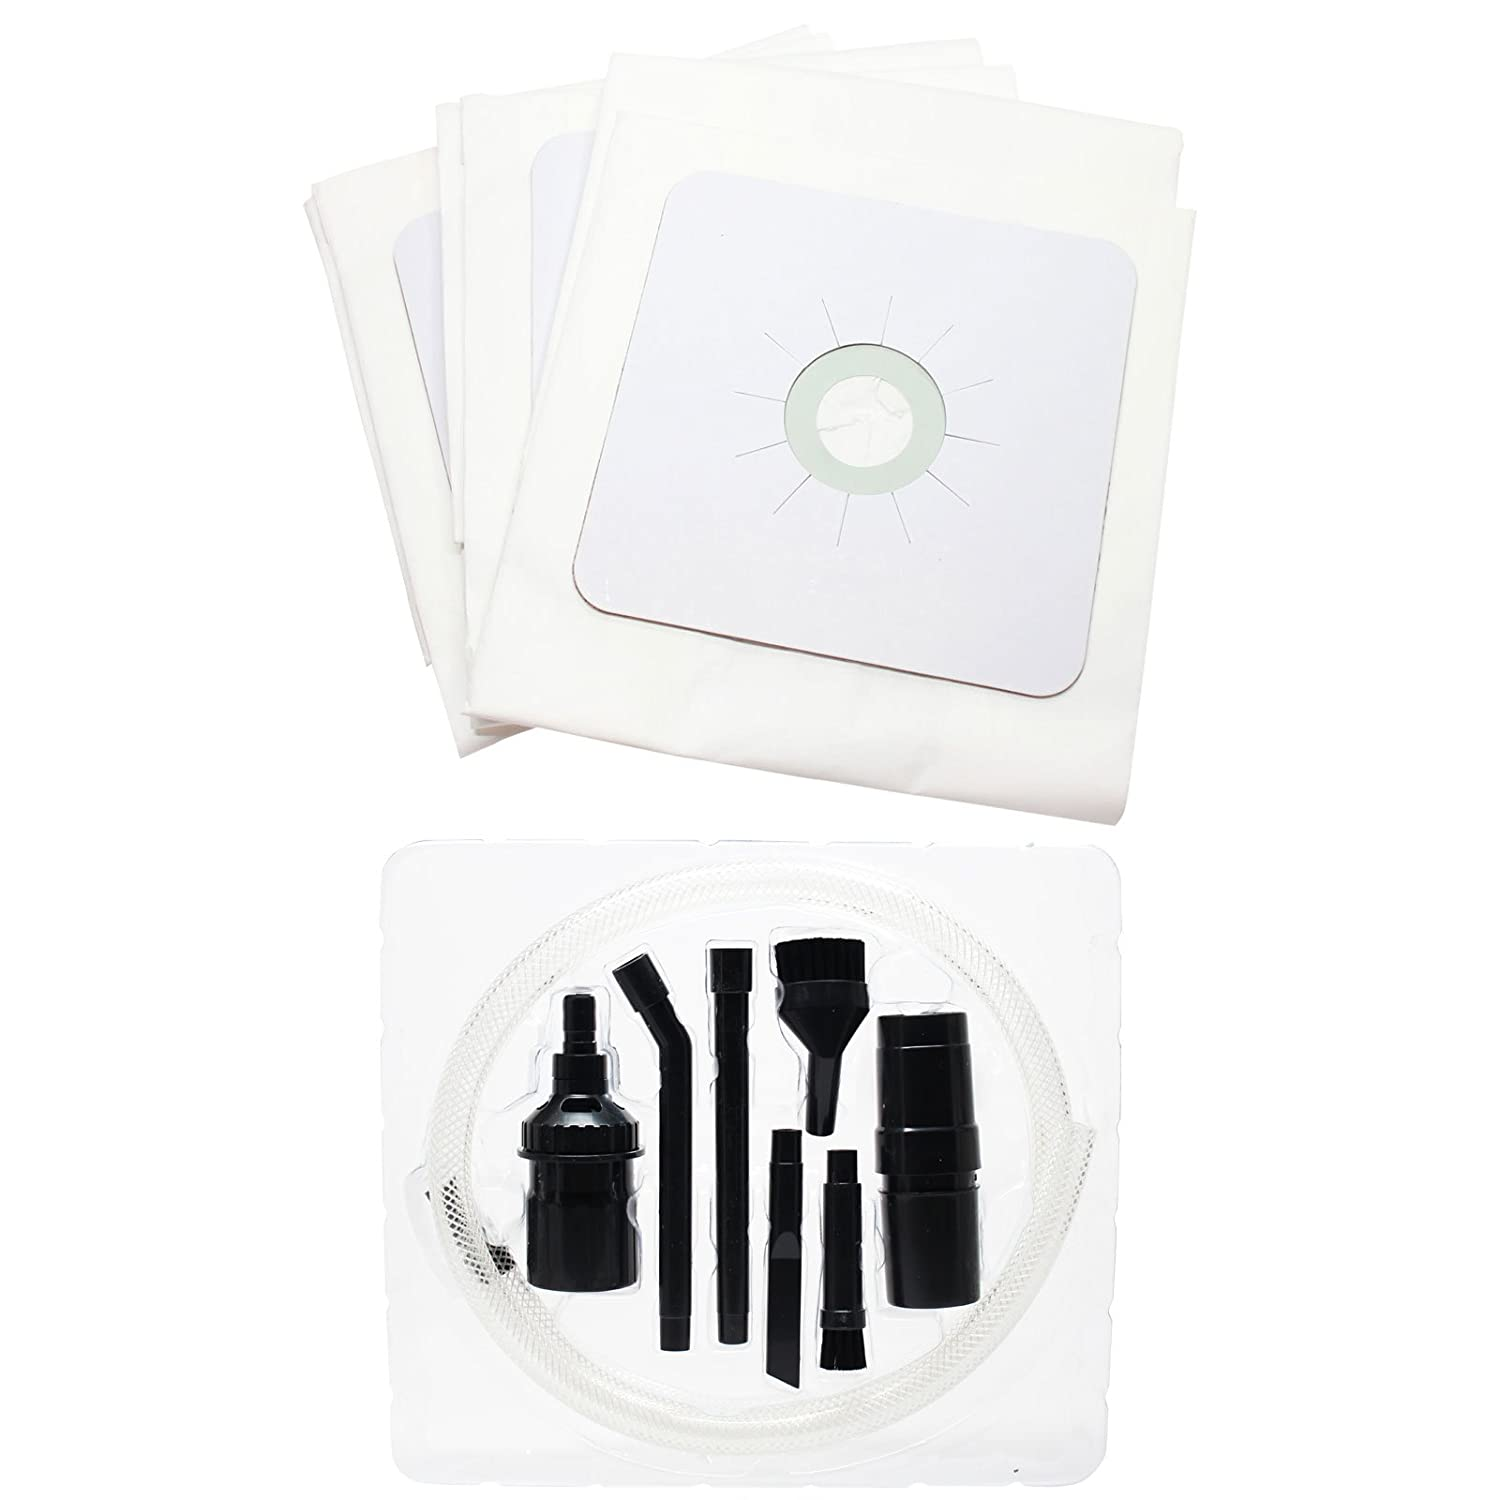 3 Replacement 391 Central Vacuum Bags with 1 Micro Vacuum Attachment Kit for NuTone, Beam, Electrolux - Compatible with Nutone VX475, Nutone CV353, Nutone CV450, Nutone 391, Nutone CV400, Nutone CV350, Nutone 44186, Nutone CV352, Nutone CV750, Nutone CV-391, Nutone CF3918, Nutone Advantage, Beam 167, Nutone CV351, Nutone CV653